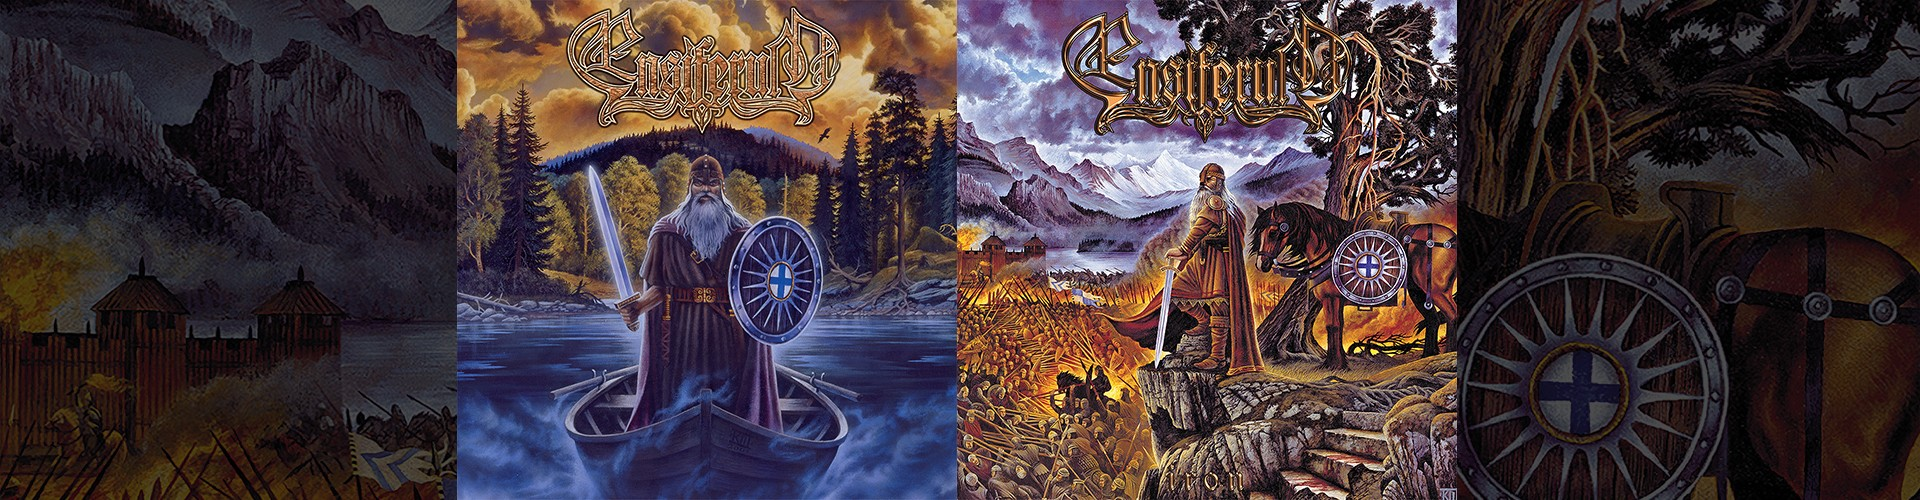 Ensiferum represses